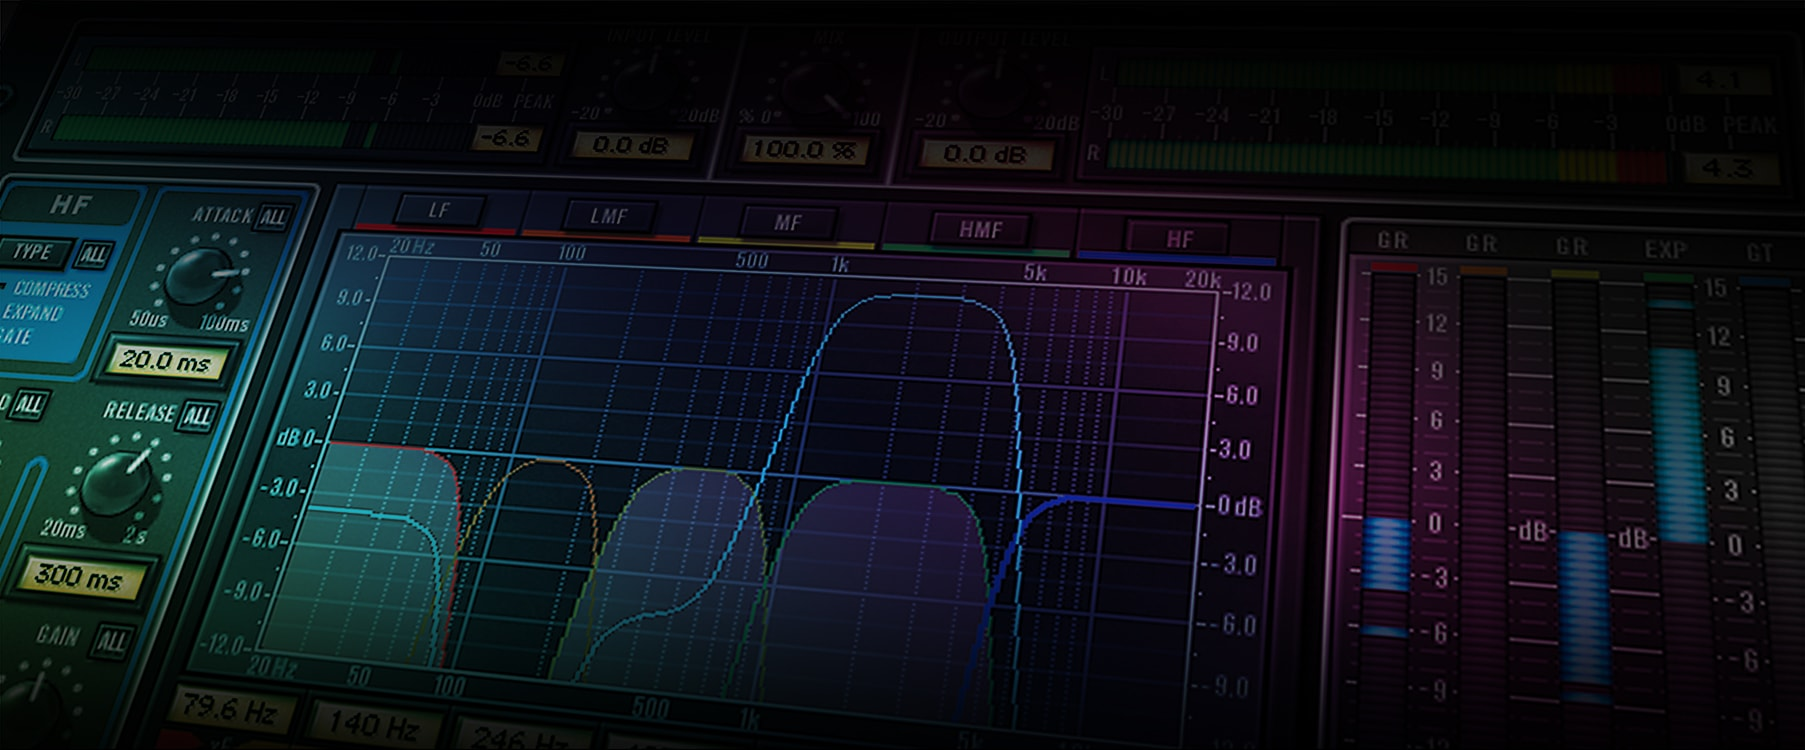 Using Multiband Eq To Fix Common Mix Problems Universal Audio Dictionary Of Electronic And Engineering Terms Mixer Circuit With